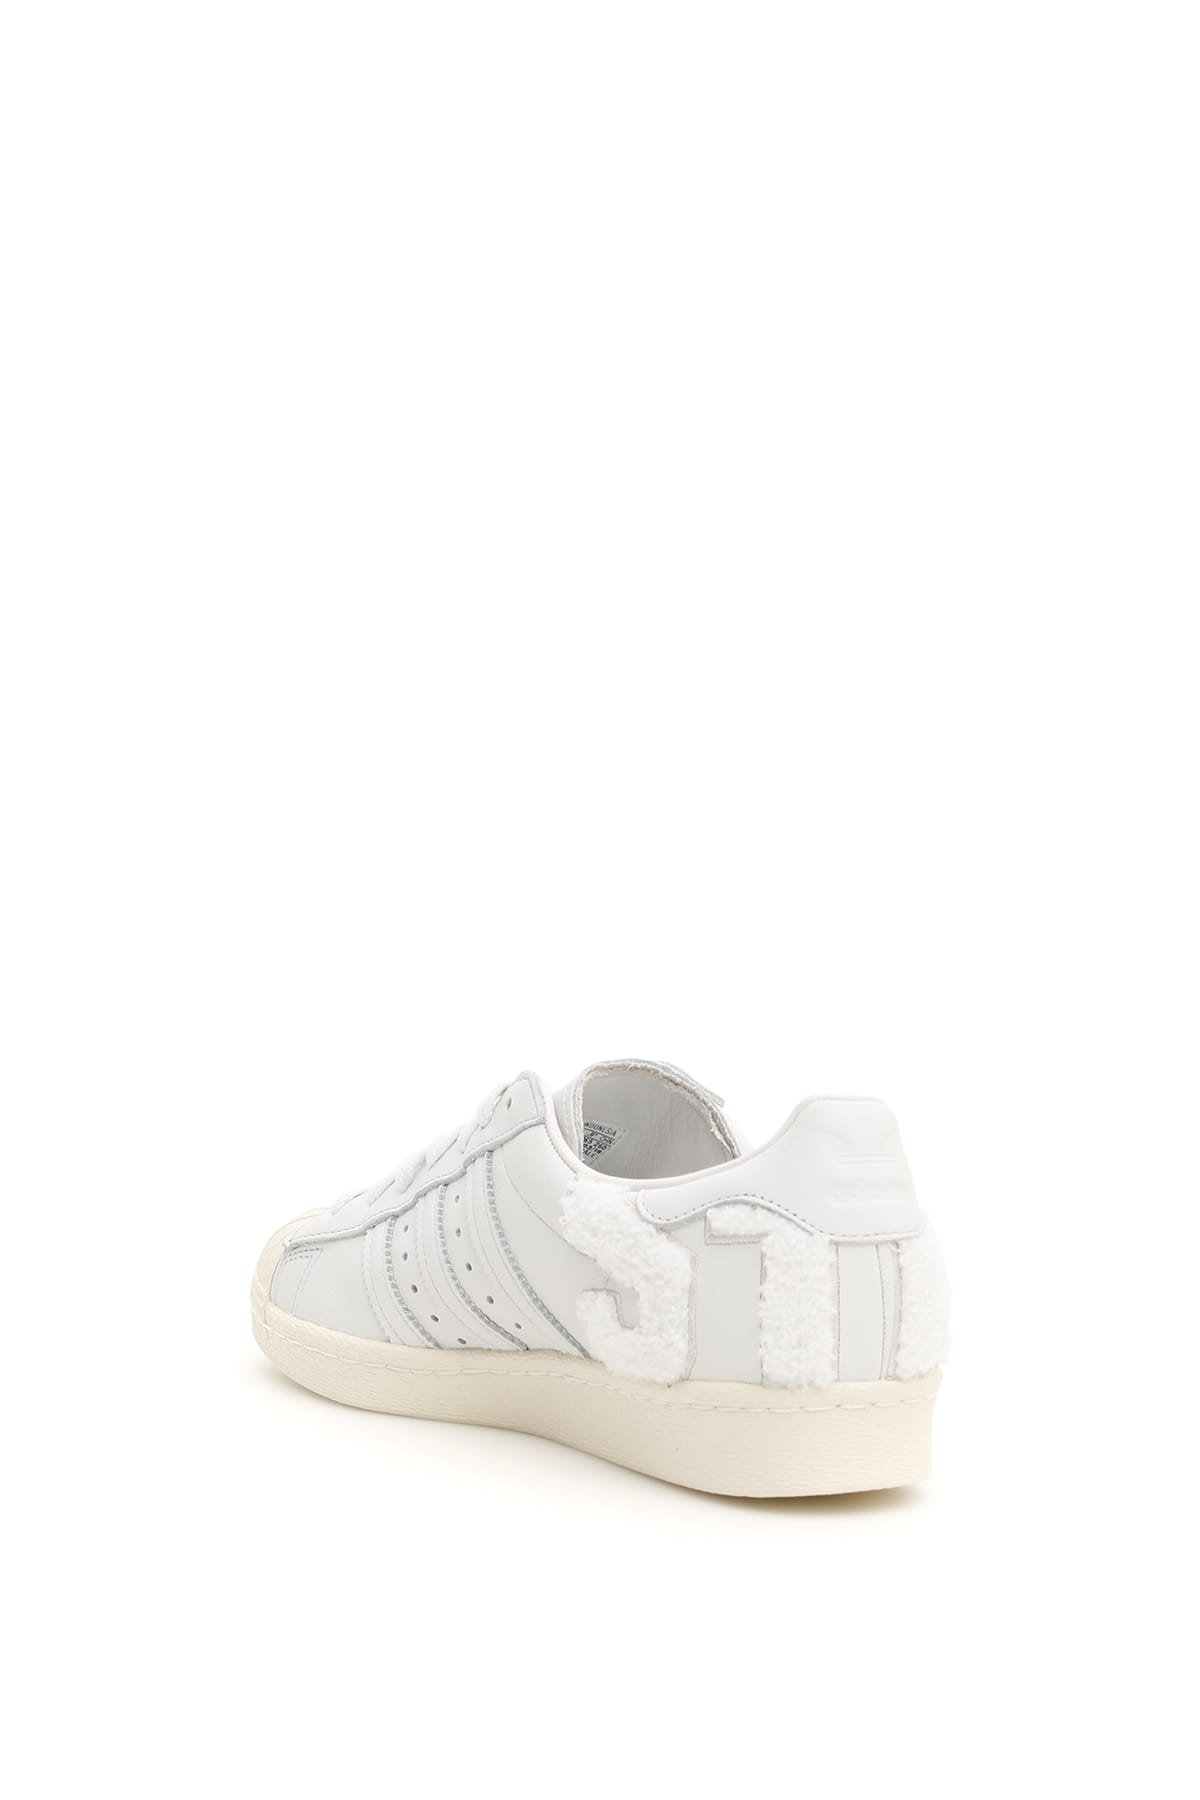 Adidas Adidas Superstar Sst 80s Sneakers CRYSTAL WHITE OFF